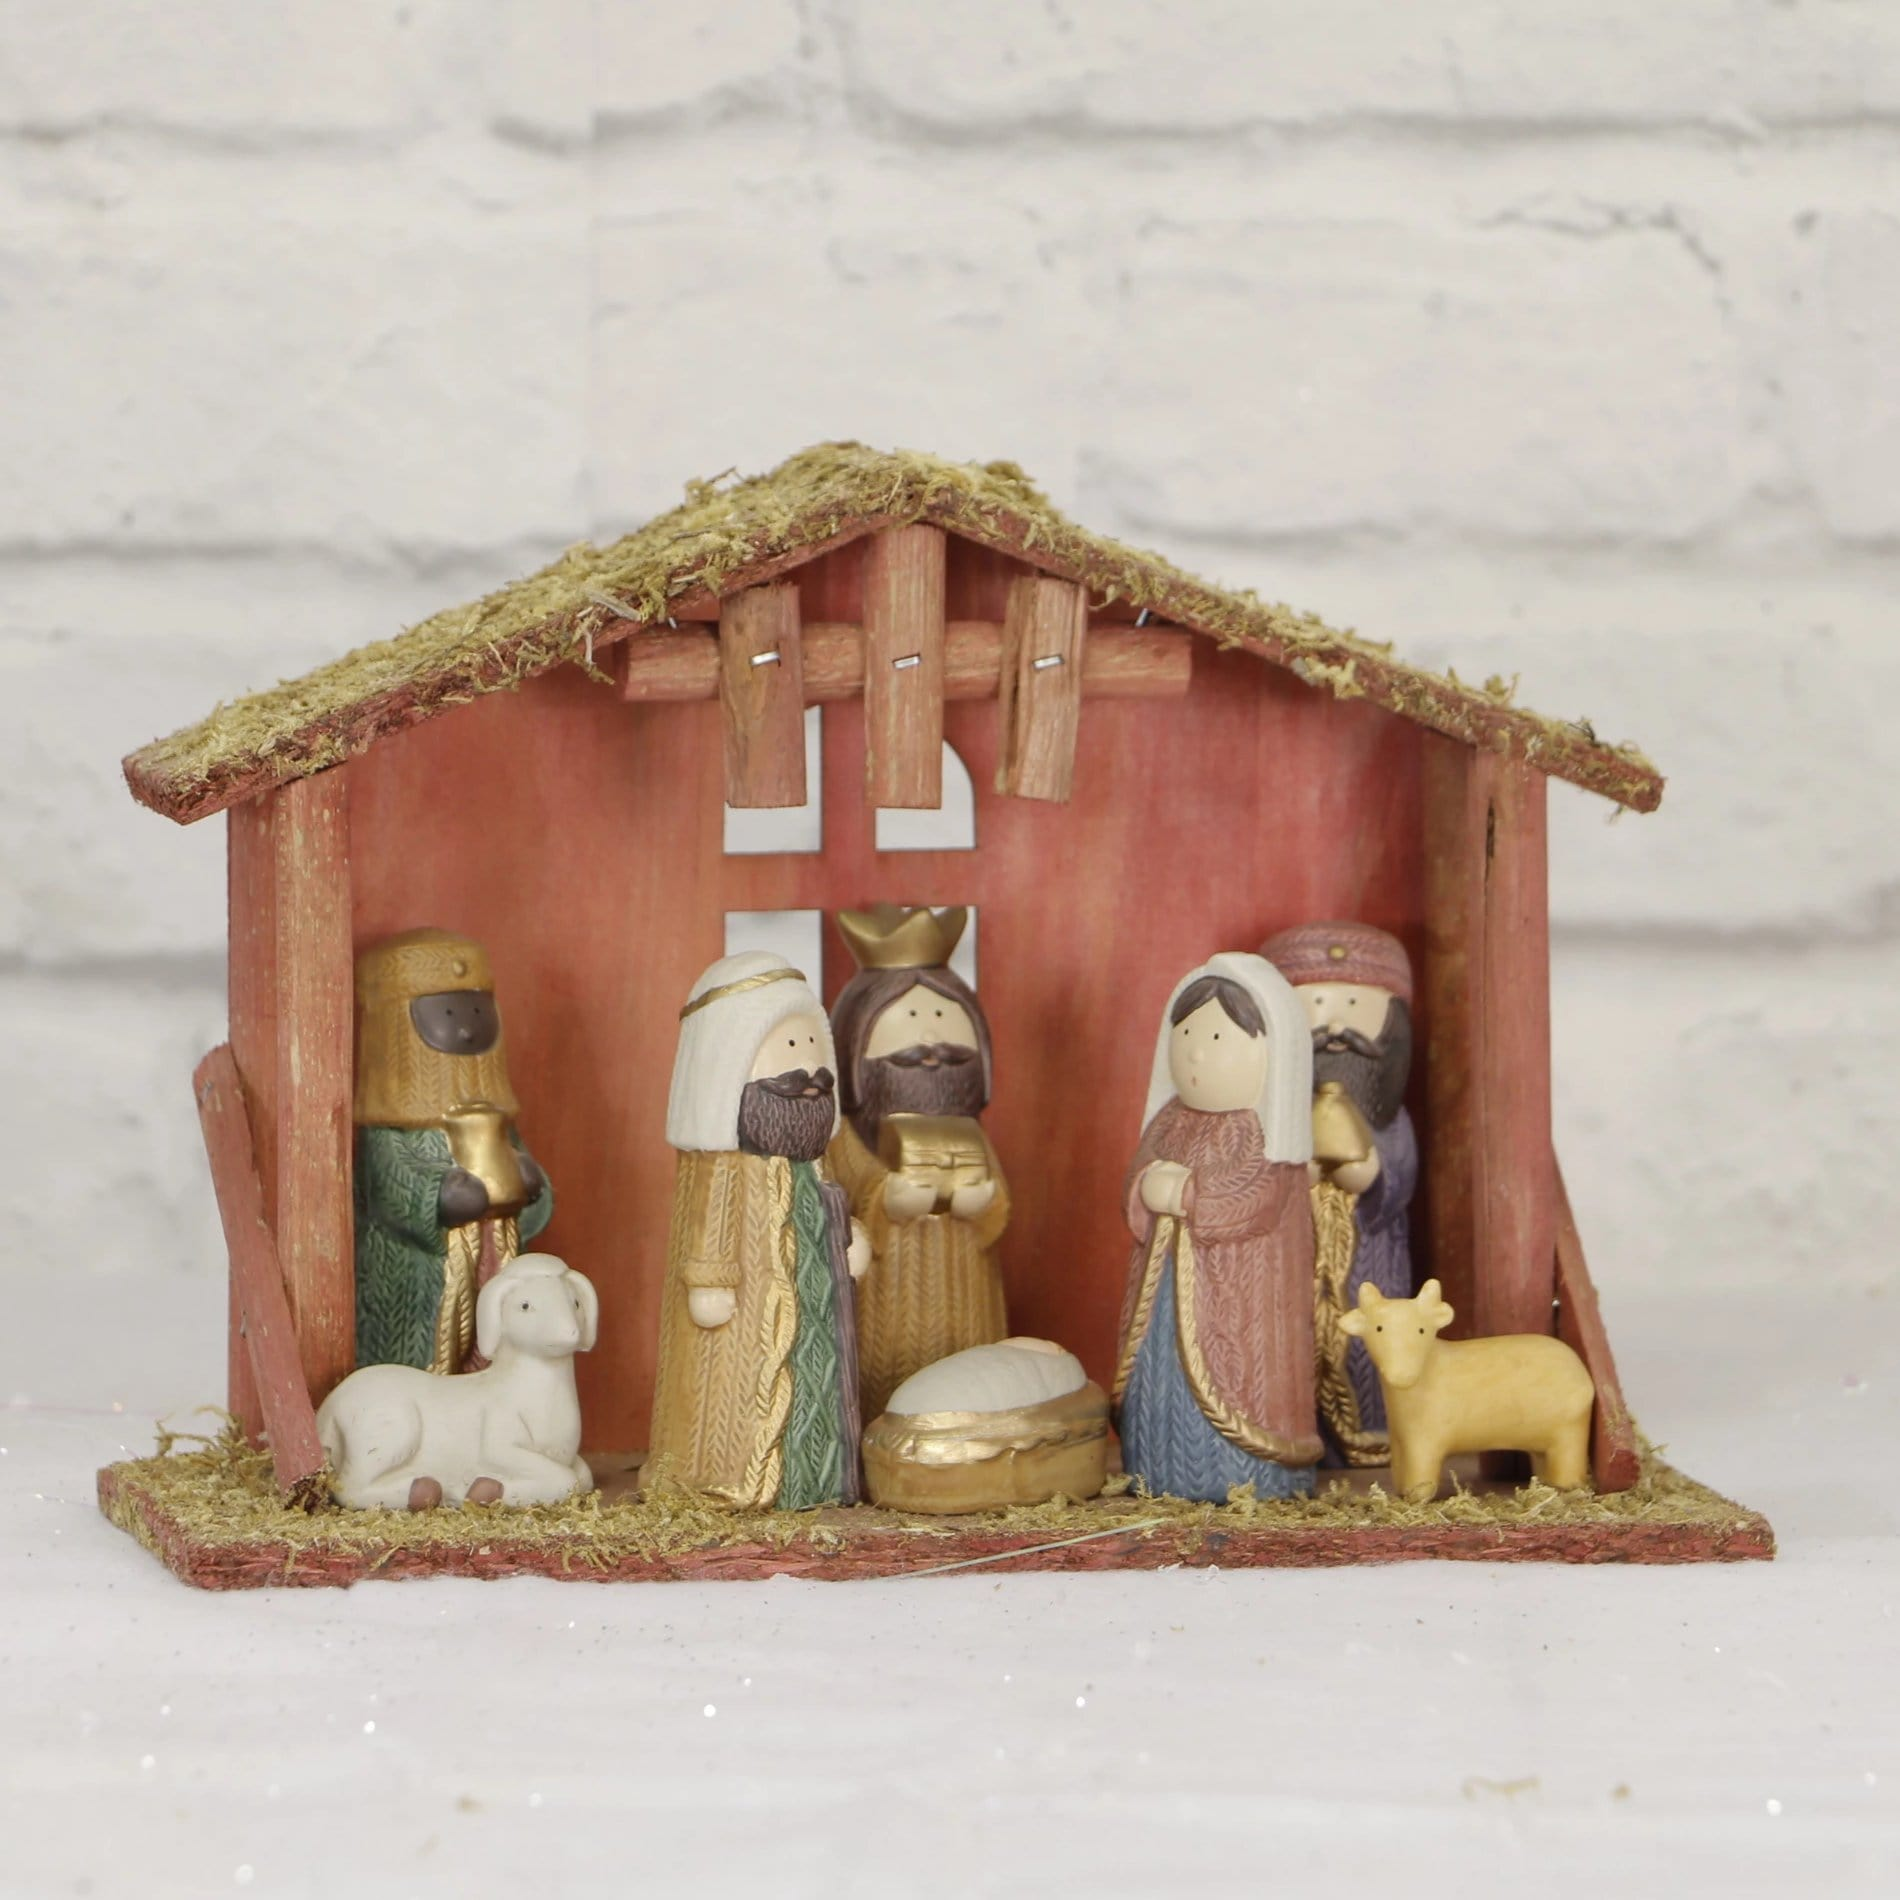 Porcelain Nativity Scene - 9pc